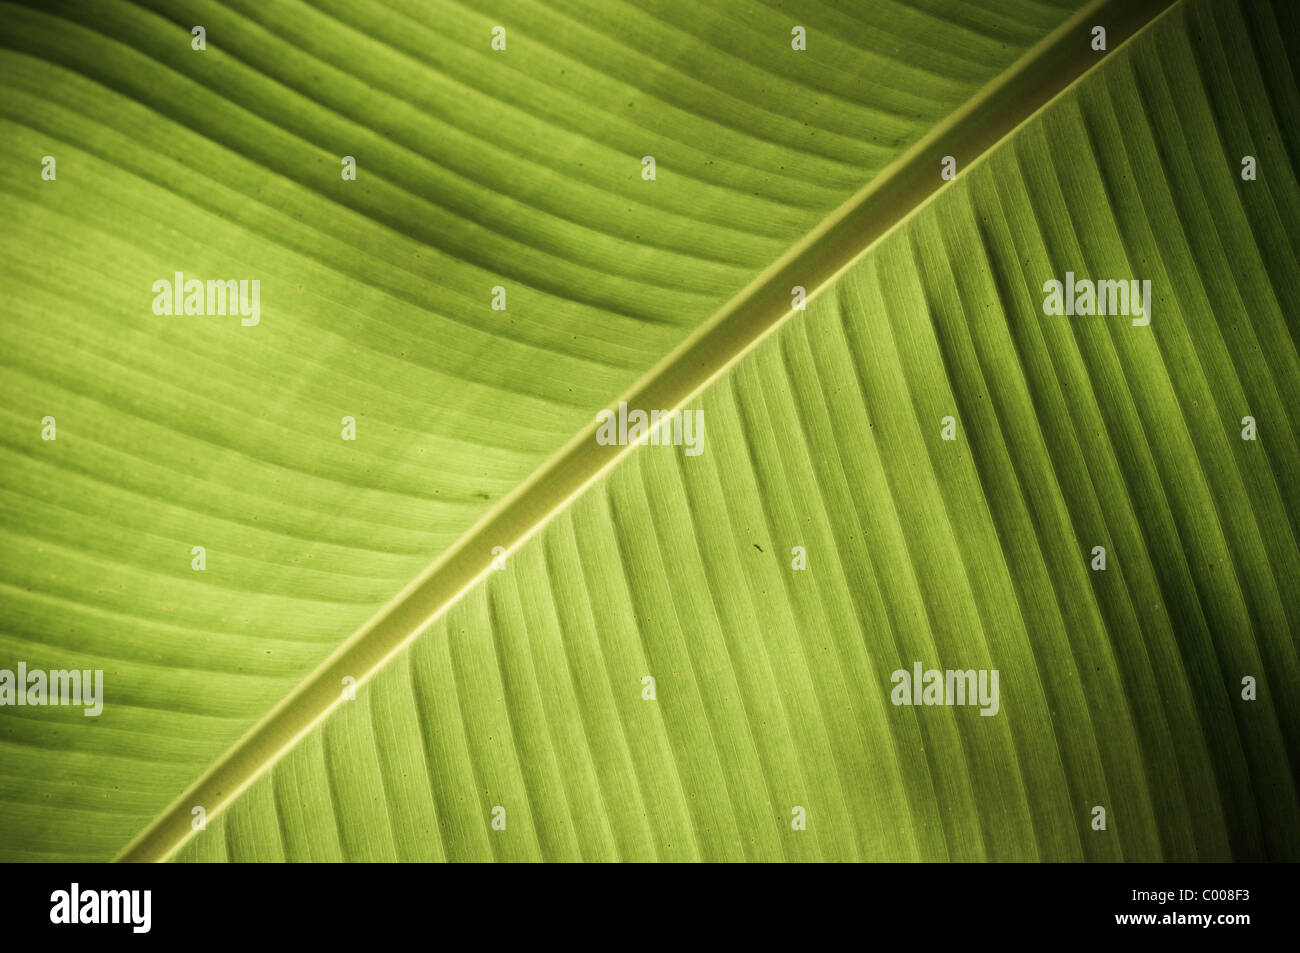 Intricate texture revealed in a fresh green leaf - Stock Image